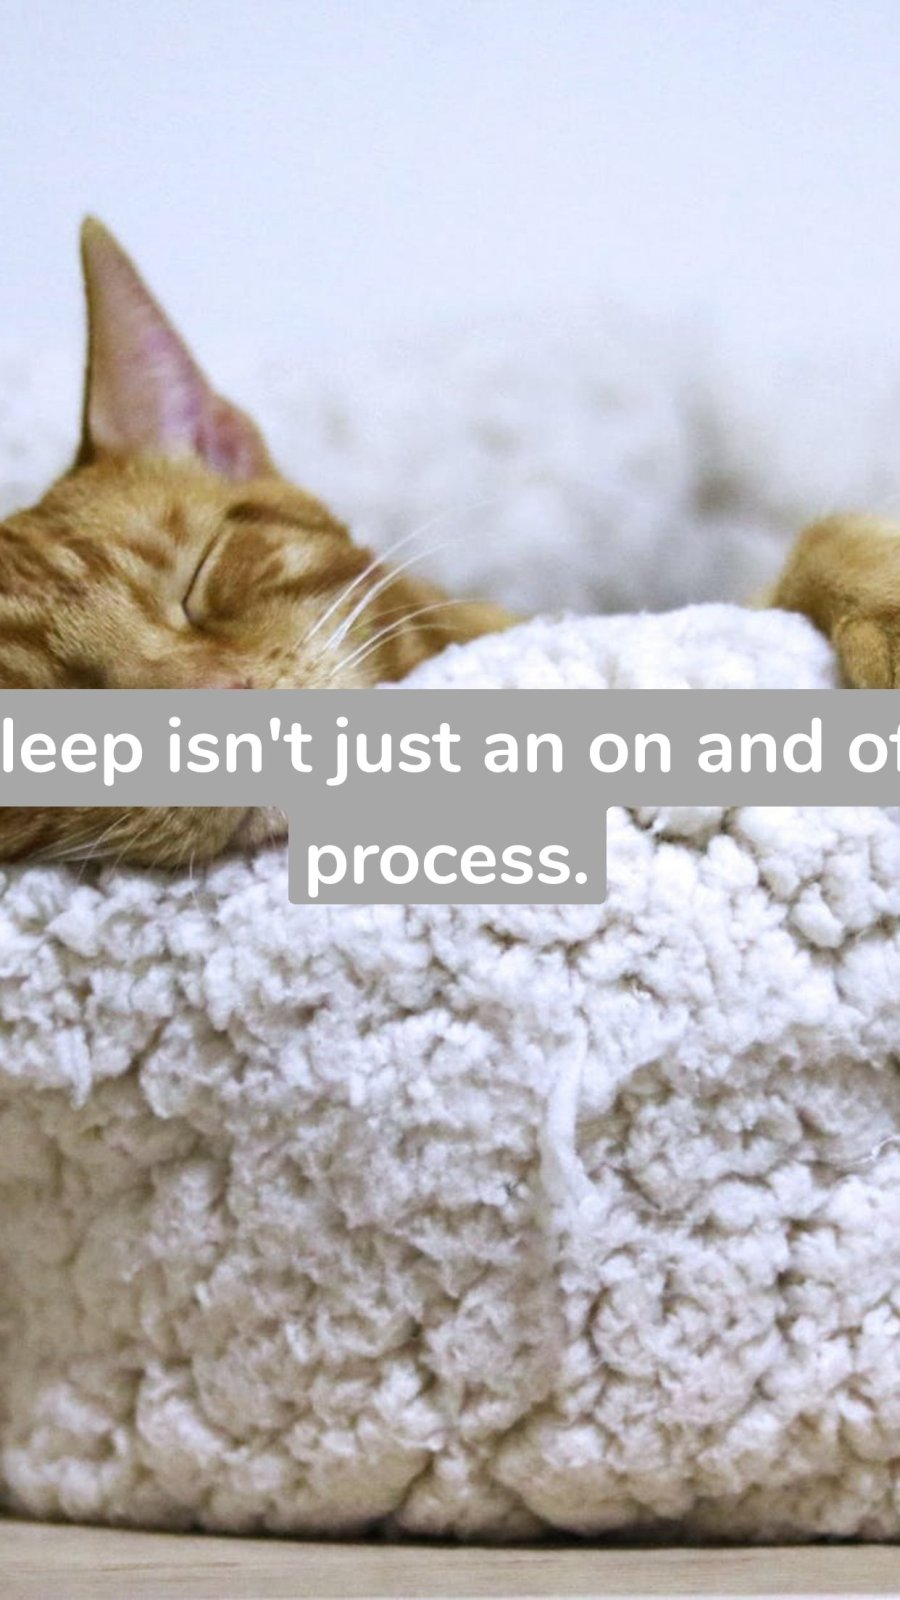 Sleep isn't just an on and off process.